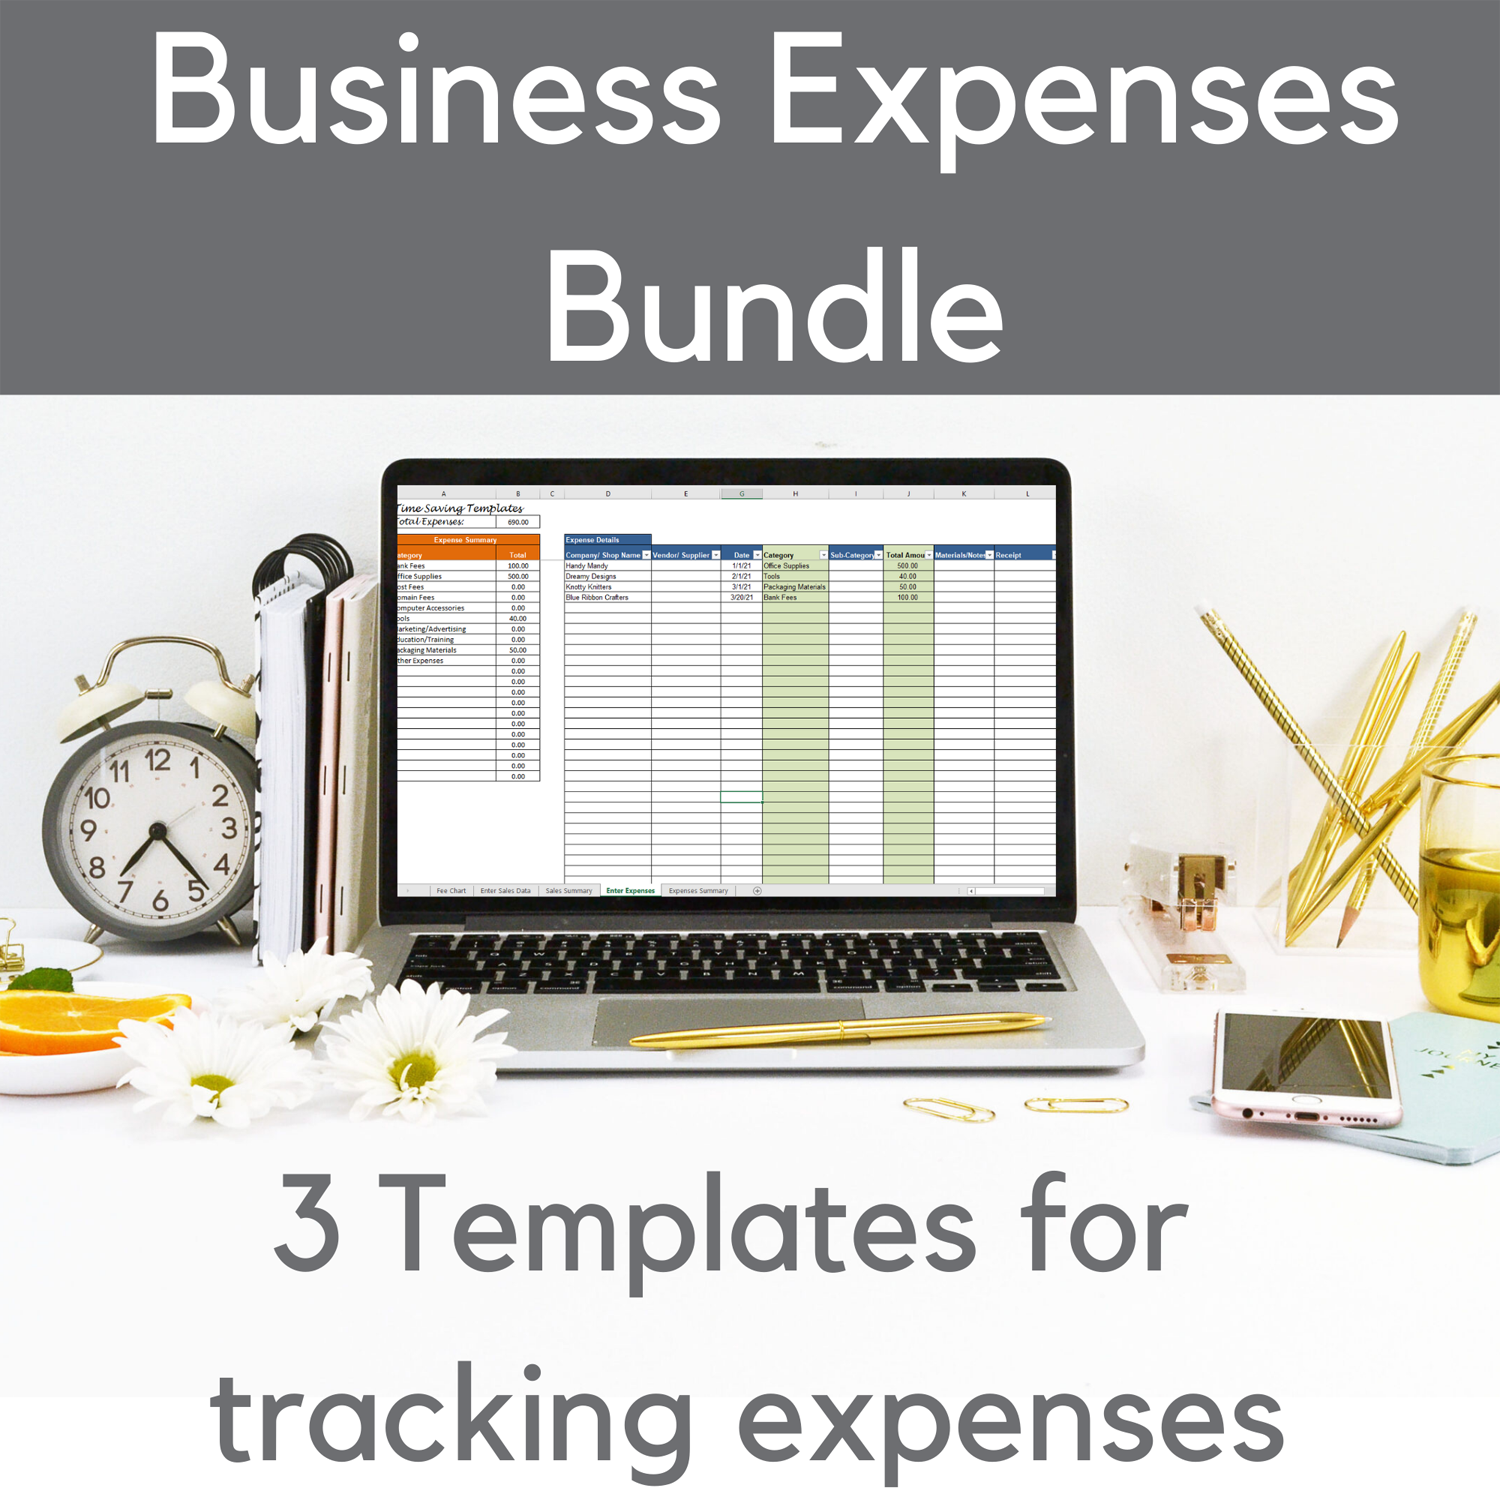 Business expenses tracking